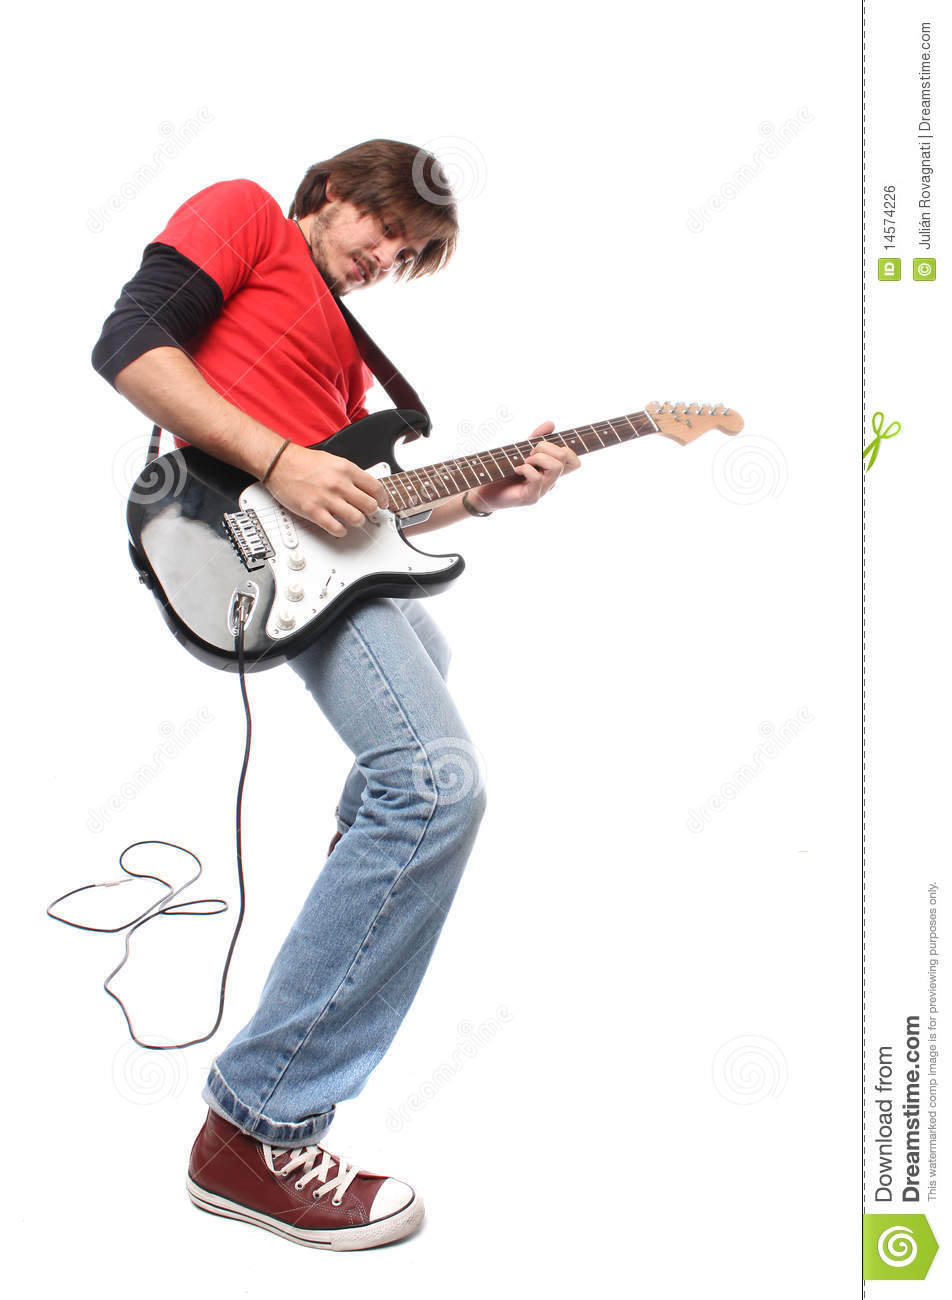 Guitar Player Royalty Free Stock Image - Image: 14574226